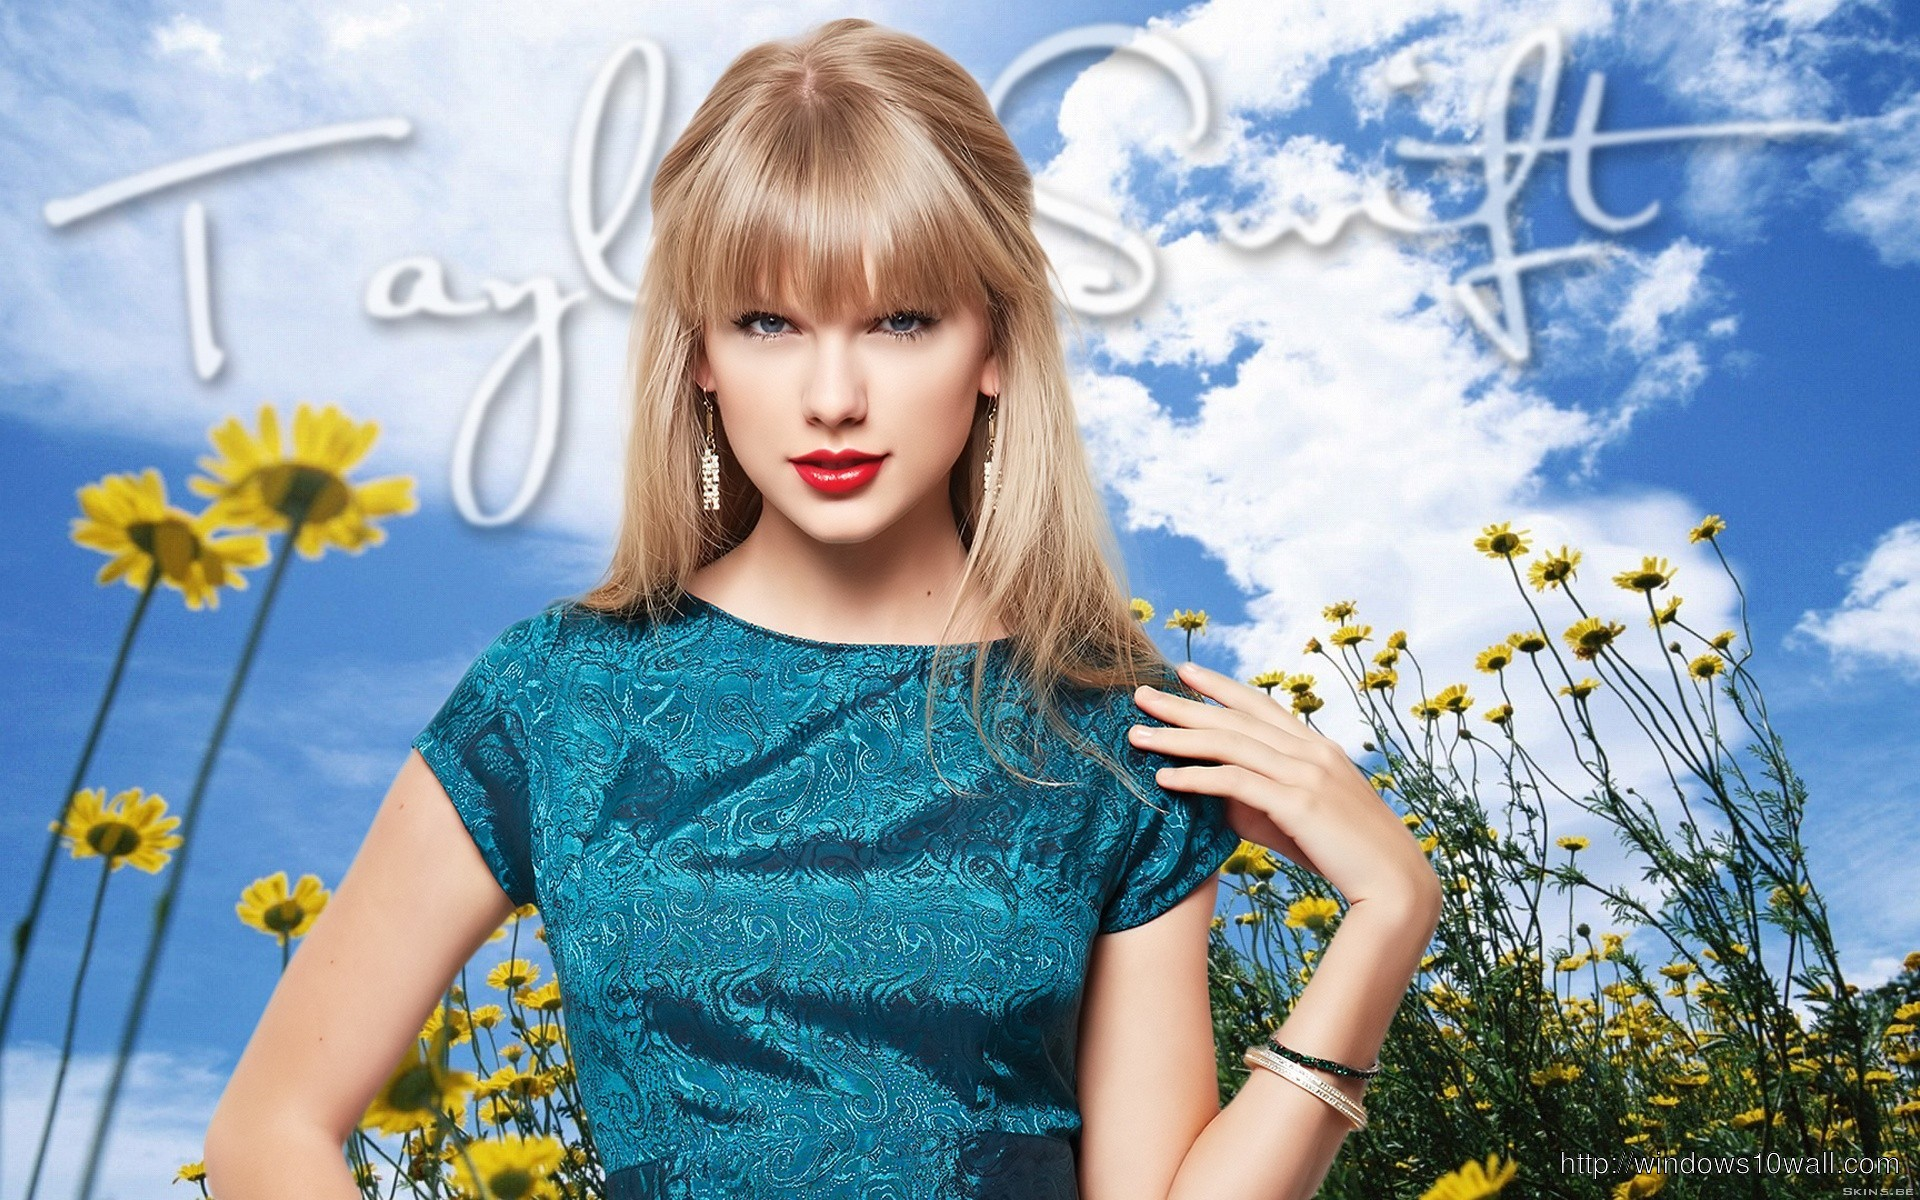 taylor-swift-computer-wallpaper-free